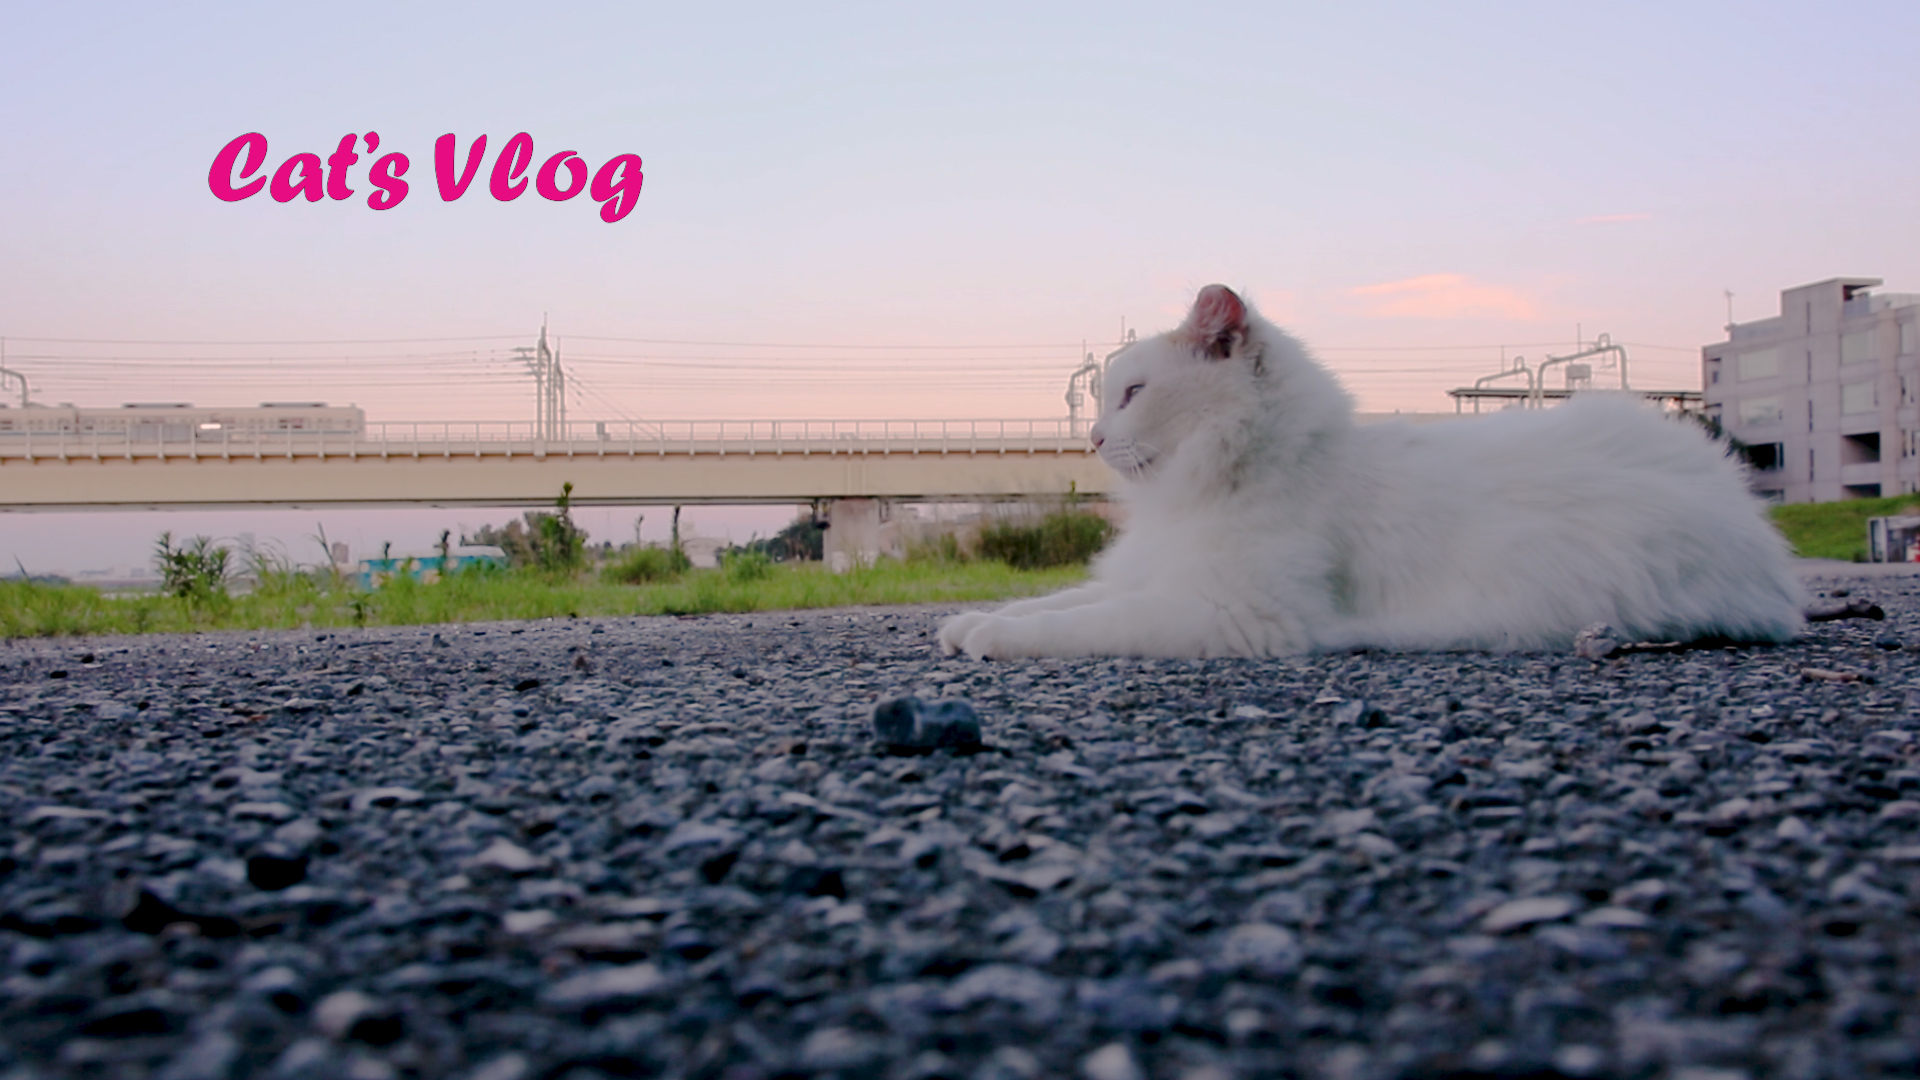 Stray cats' VLOG